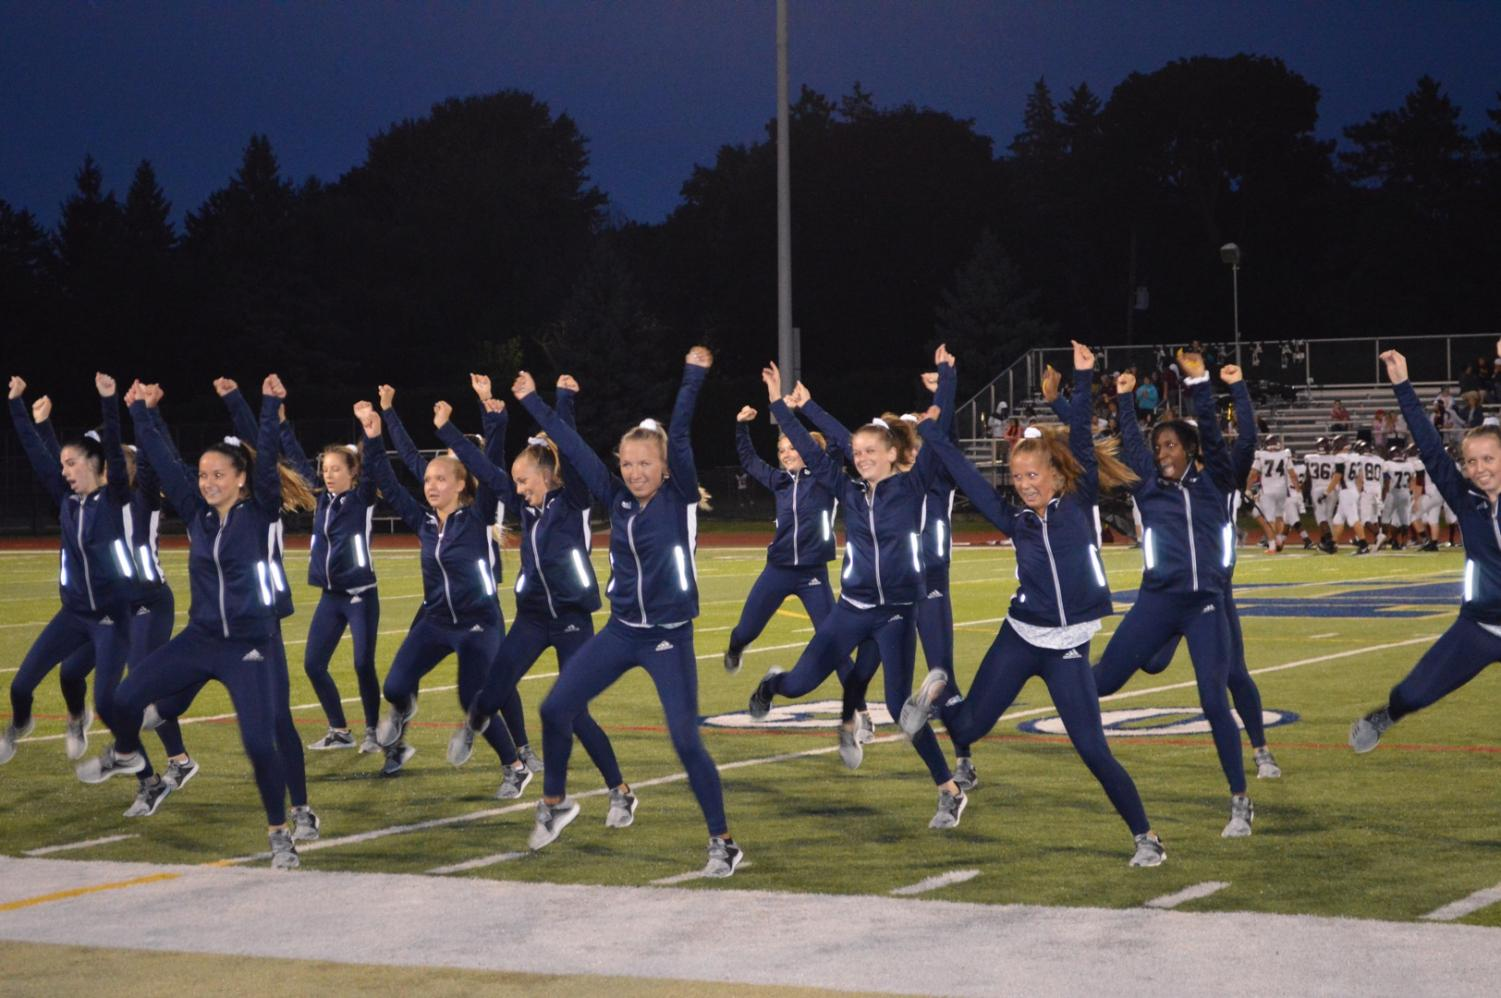 The new dance team performs for the first time during halftime of the varsity football game on Sept. 7. Photo by Olivia Mlynarek '19